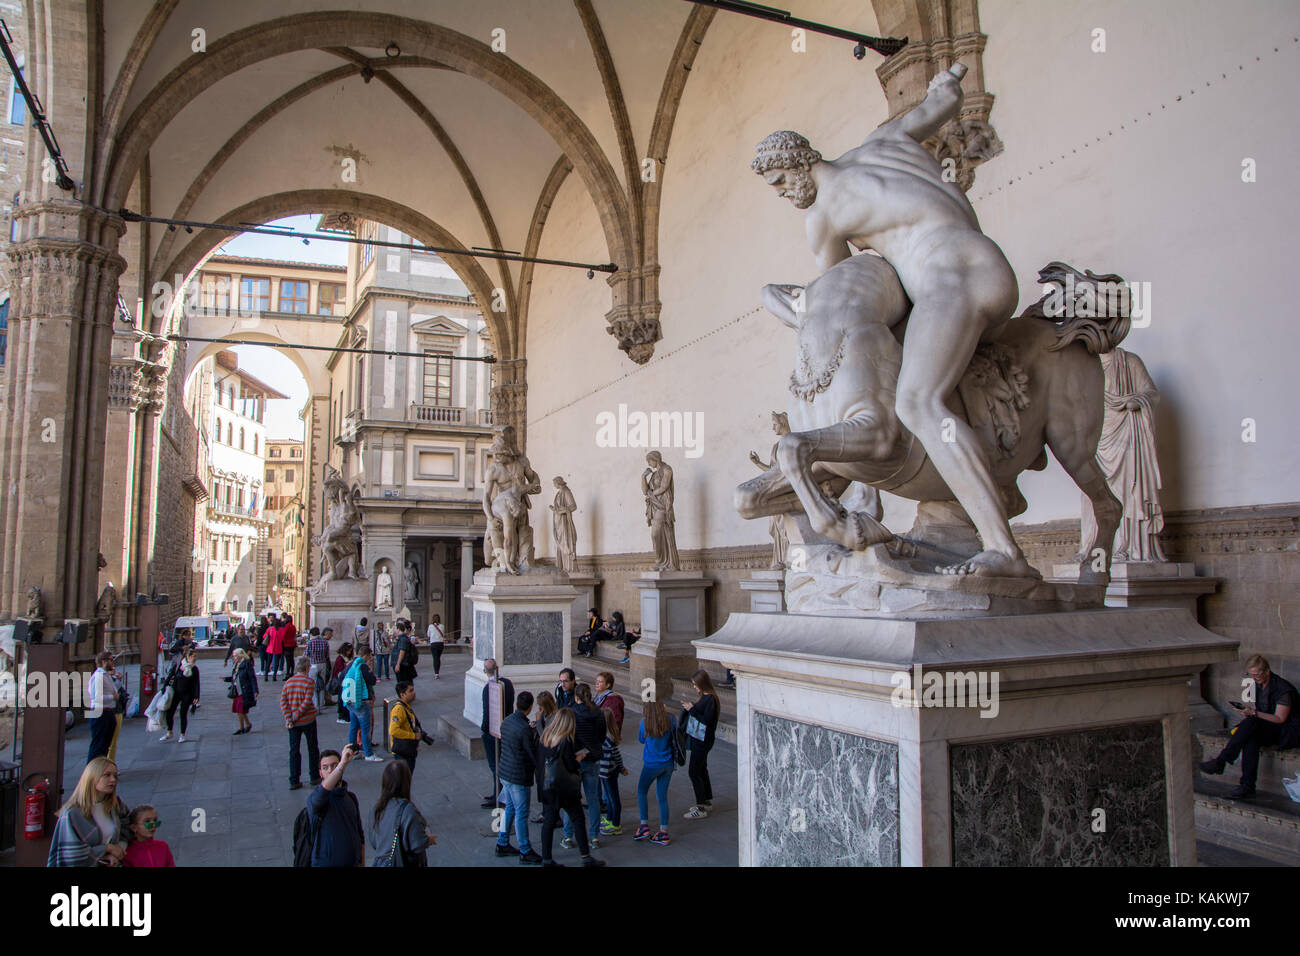 tourists-admire-the-various-marble-statu